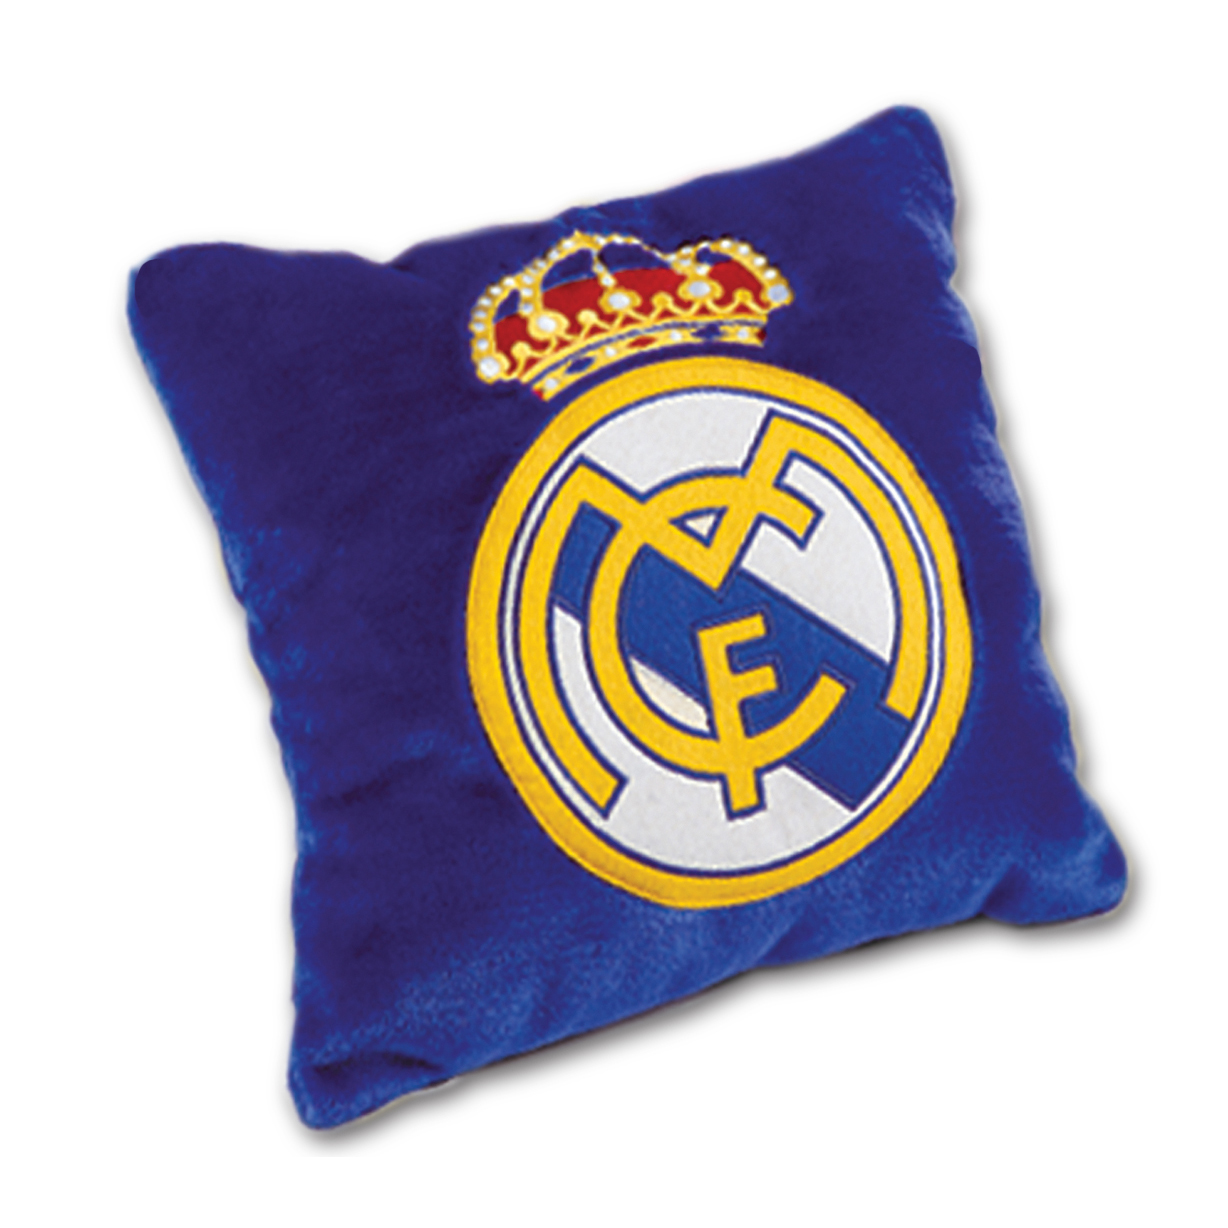 Real Madrid 3D Crest Velvet Cushion 37 x 37cm